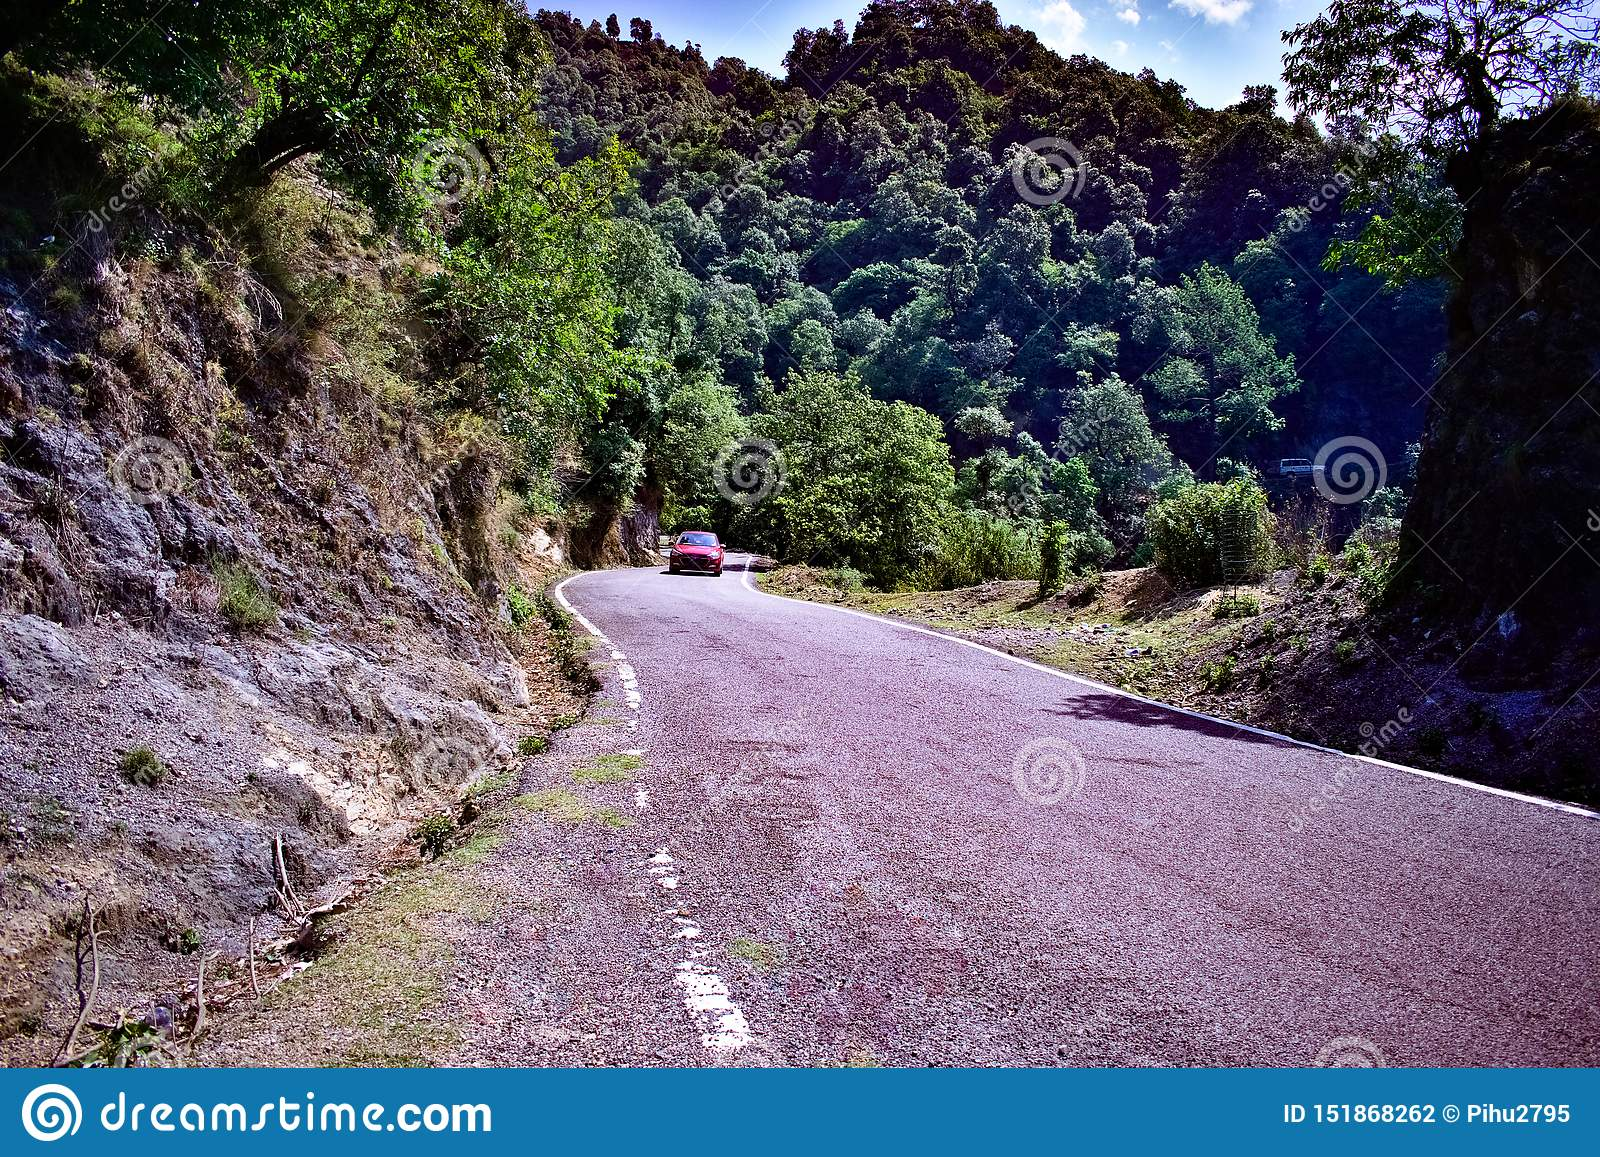 Red car speeding through a road in the mountains driving red car through the hills on vacation travelling in the himalayan mountai